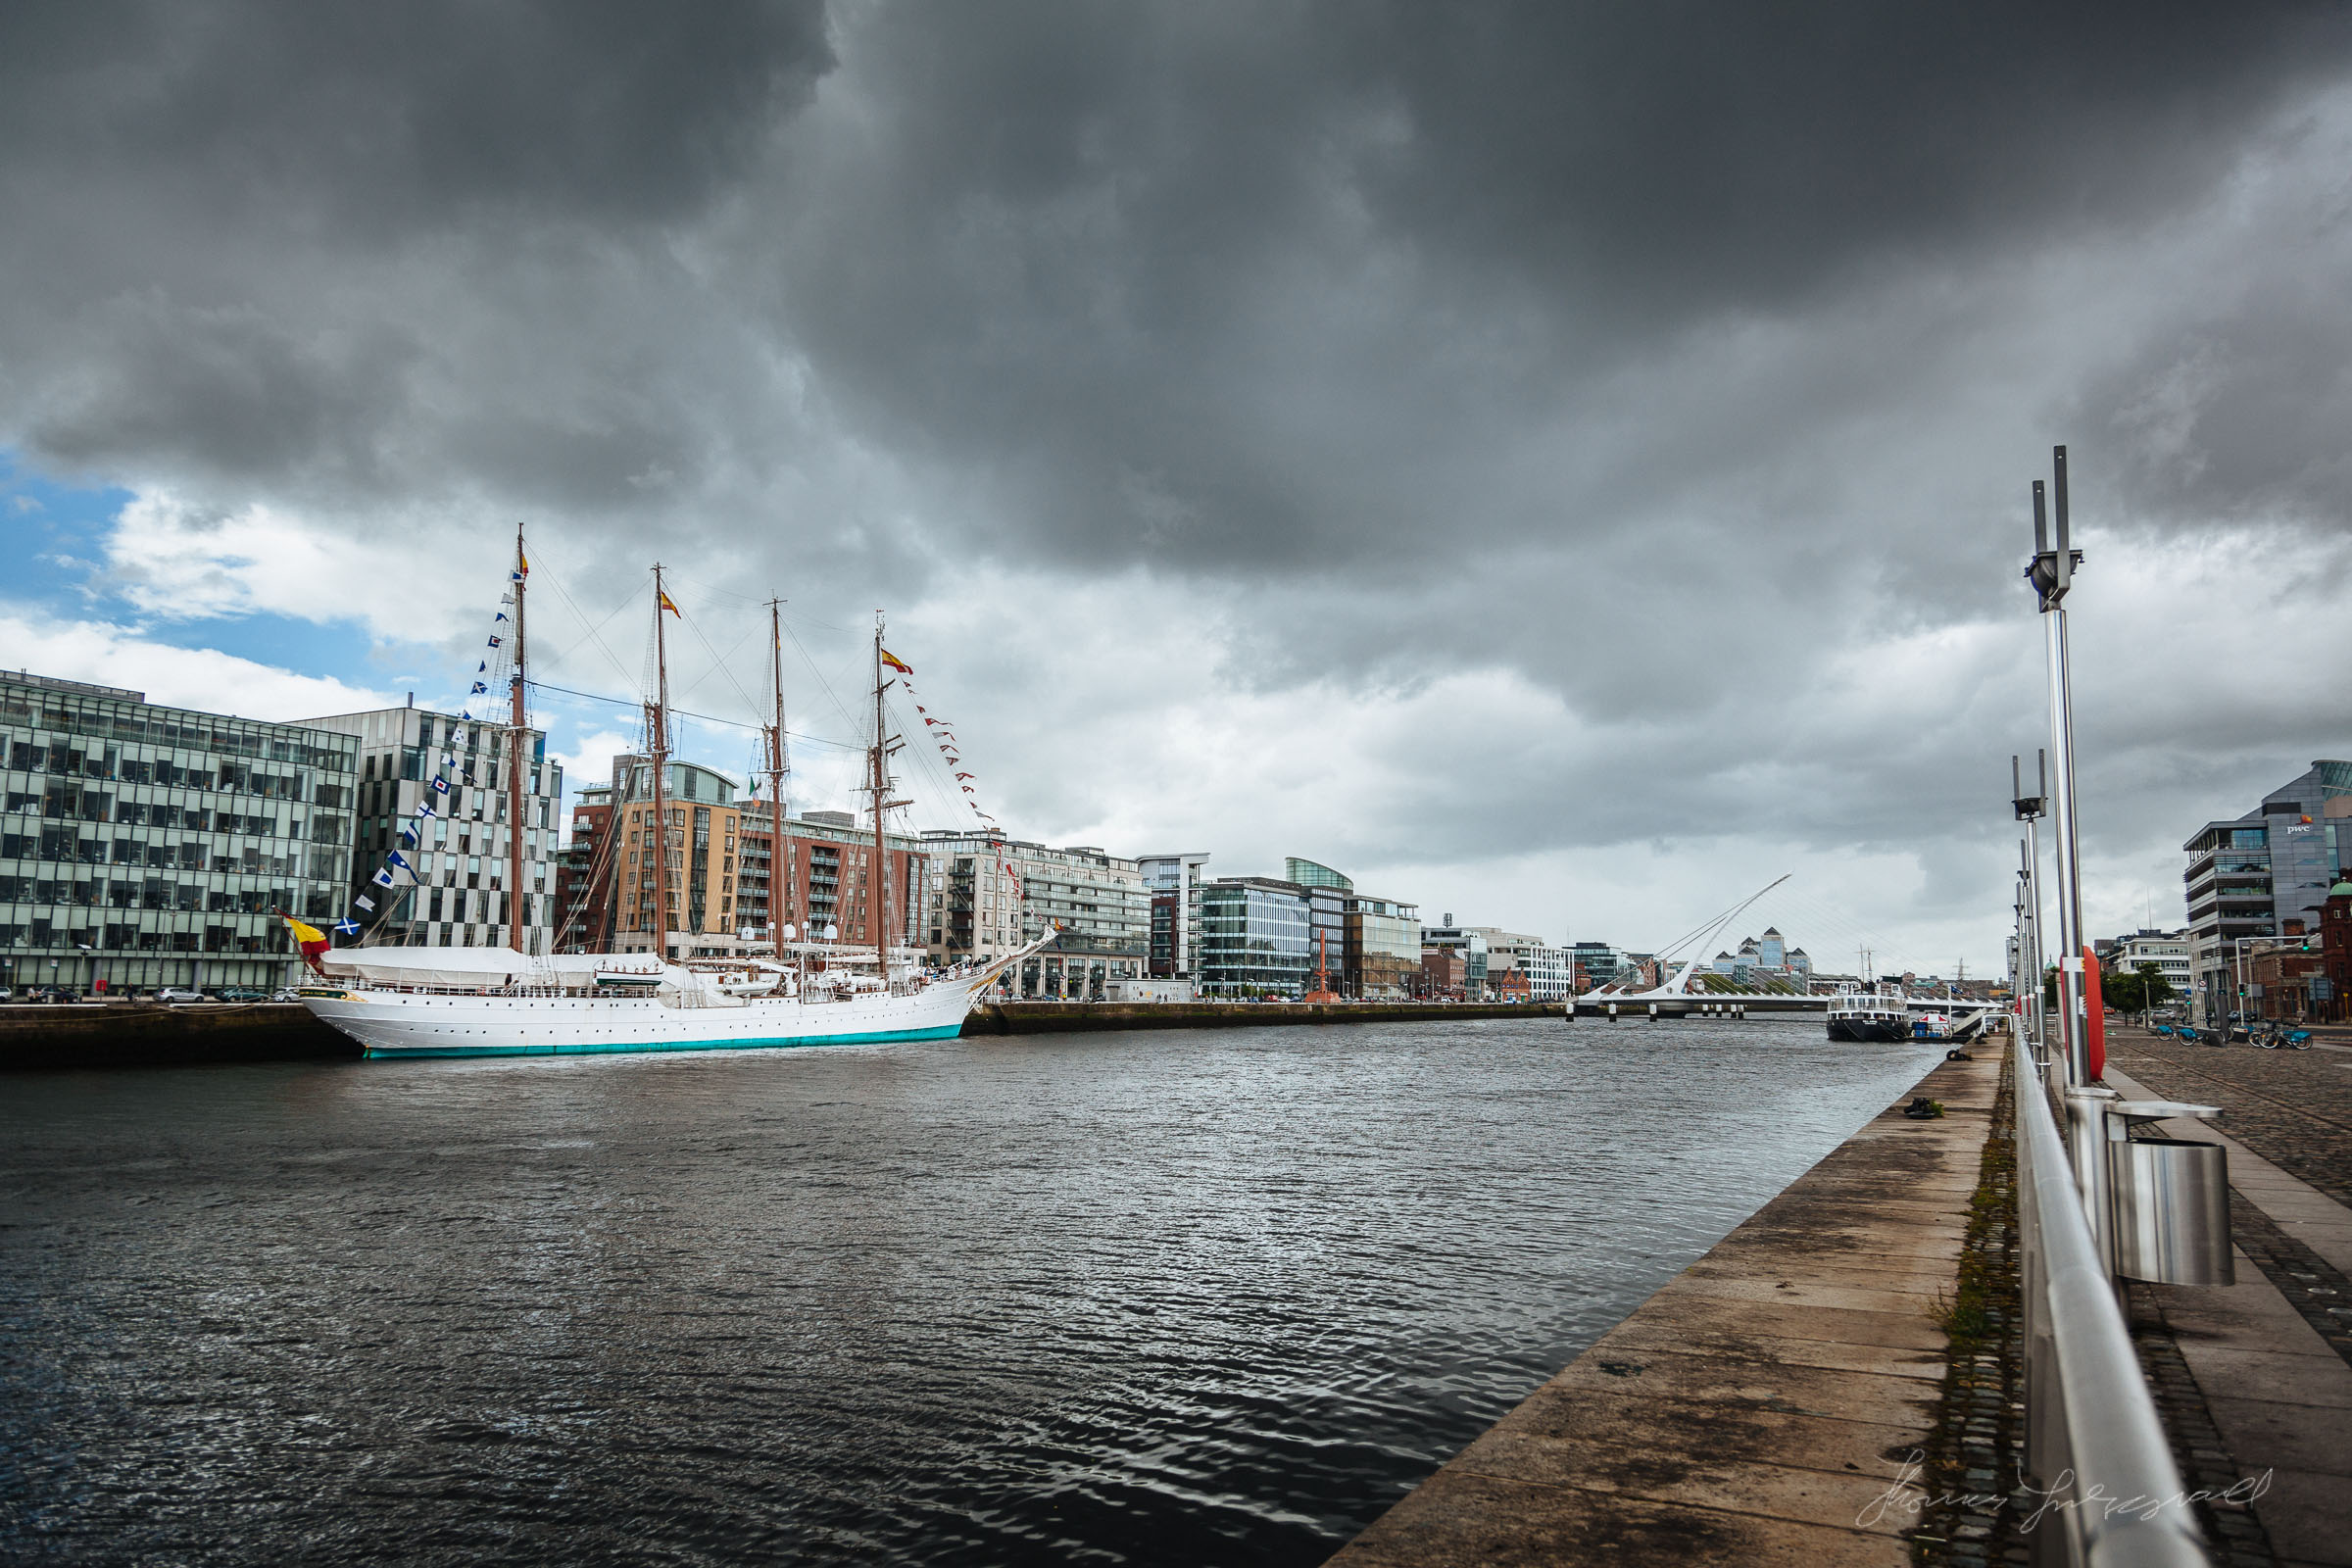 The Juan Sebastián de Elcano Docked on the River Liffey in Dublin